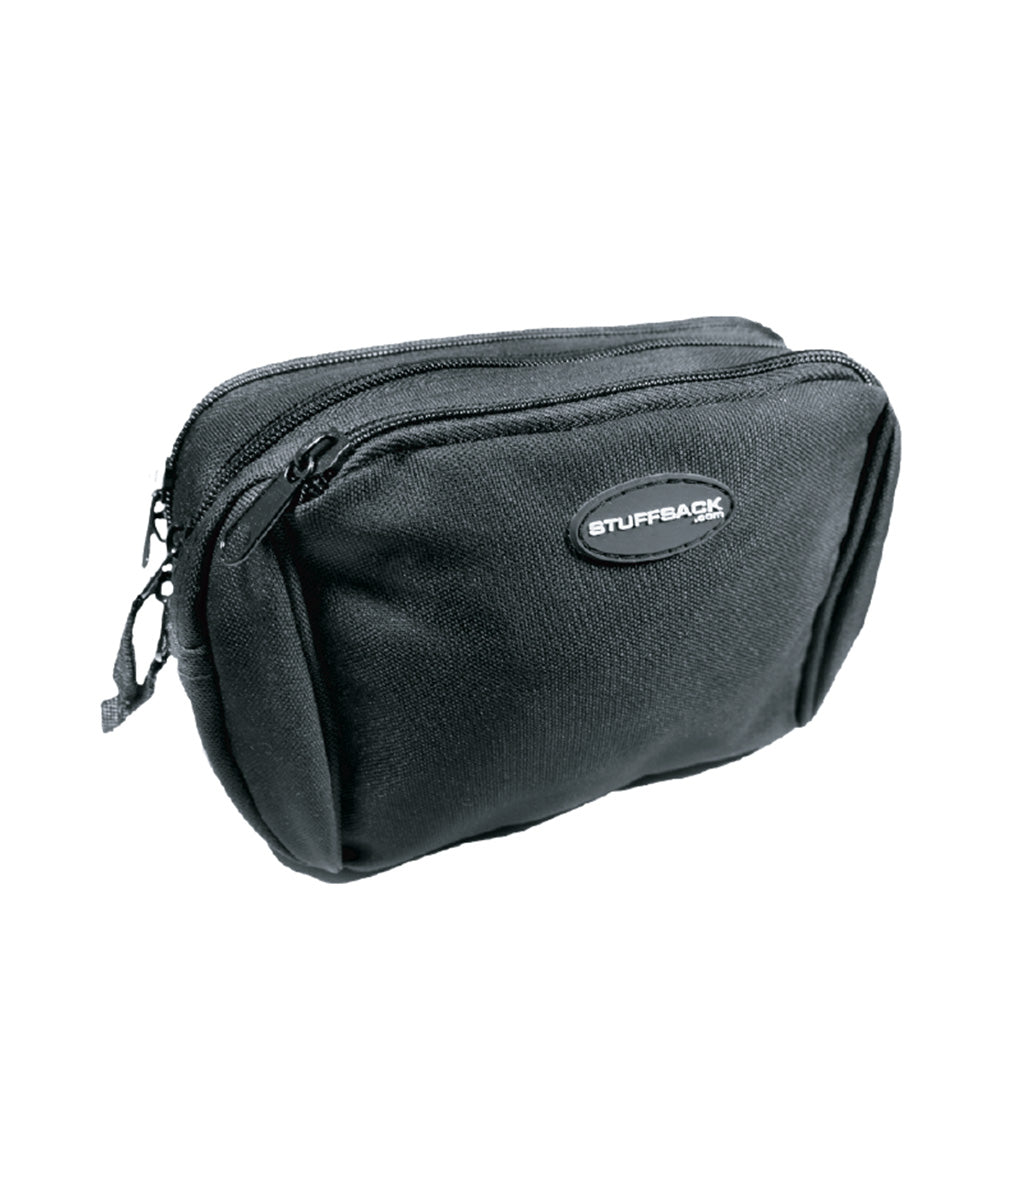 STUFFSACK.com Geo L Traveler Go Bag